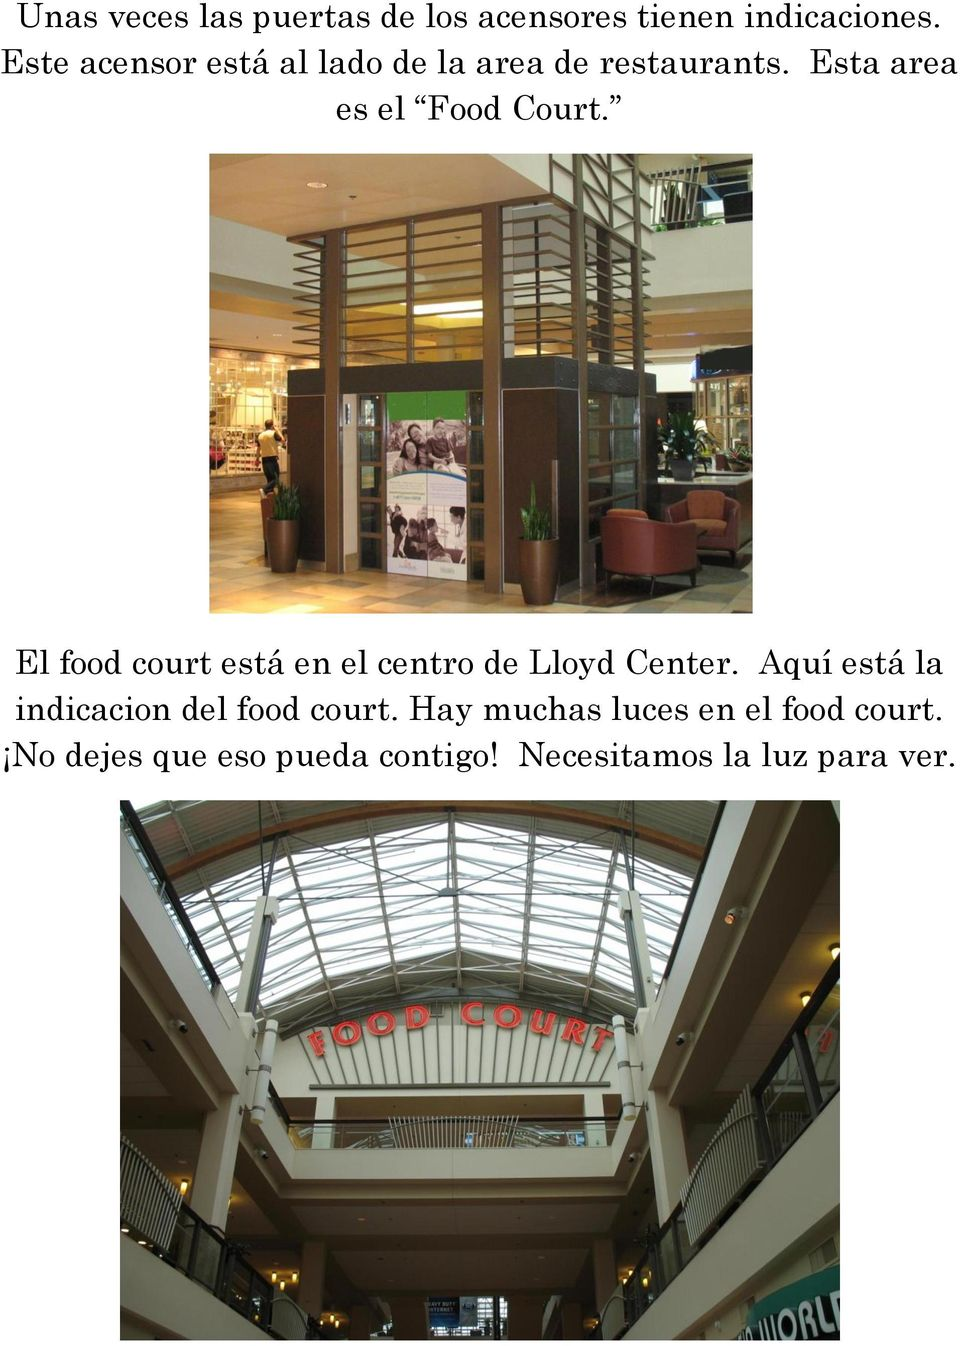 El food court está en el centro de Lloyd Center.